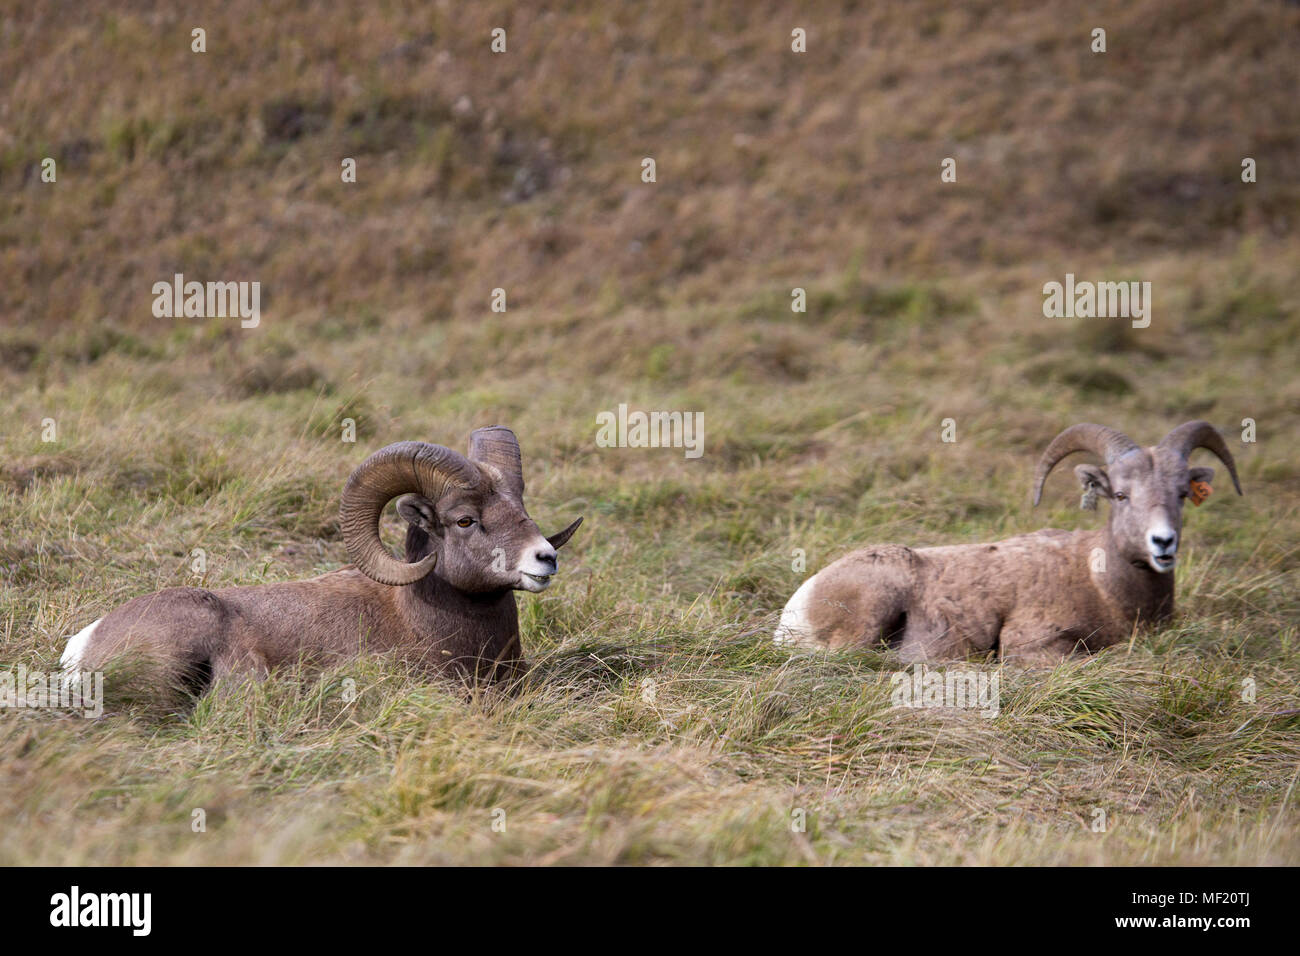 Rocky Mountain Bighorn sheep (Ovis canadensis canadensis) ram and ewe in Sheep River Wildlife Sanctuary - Stock Image